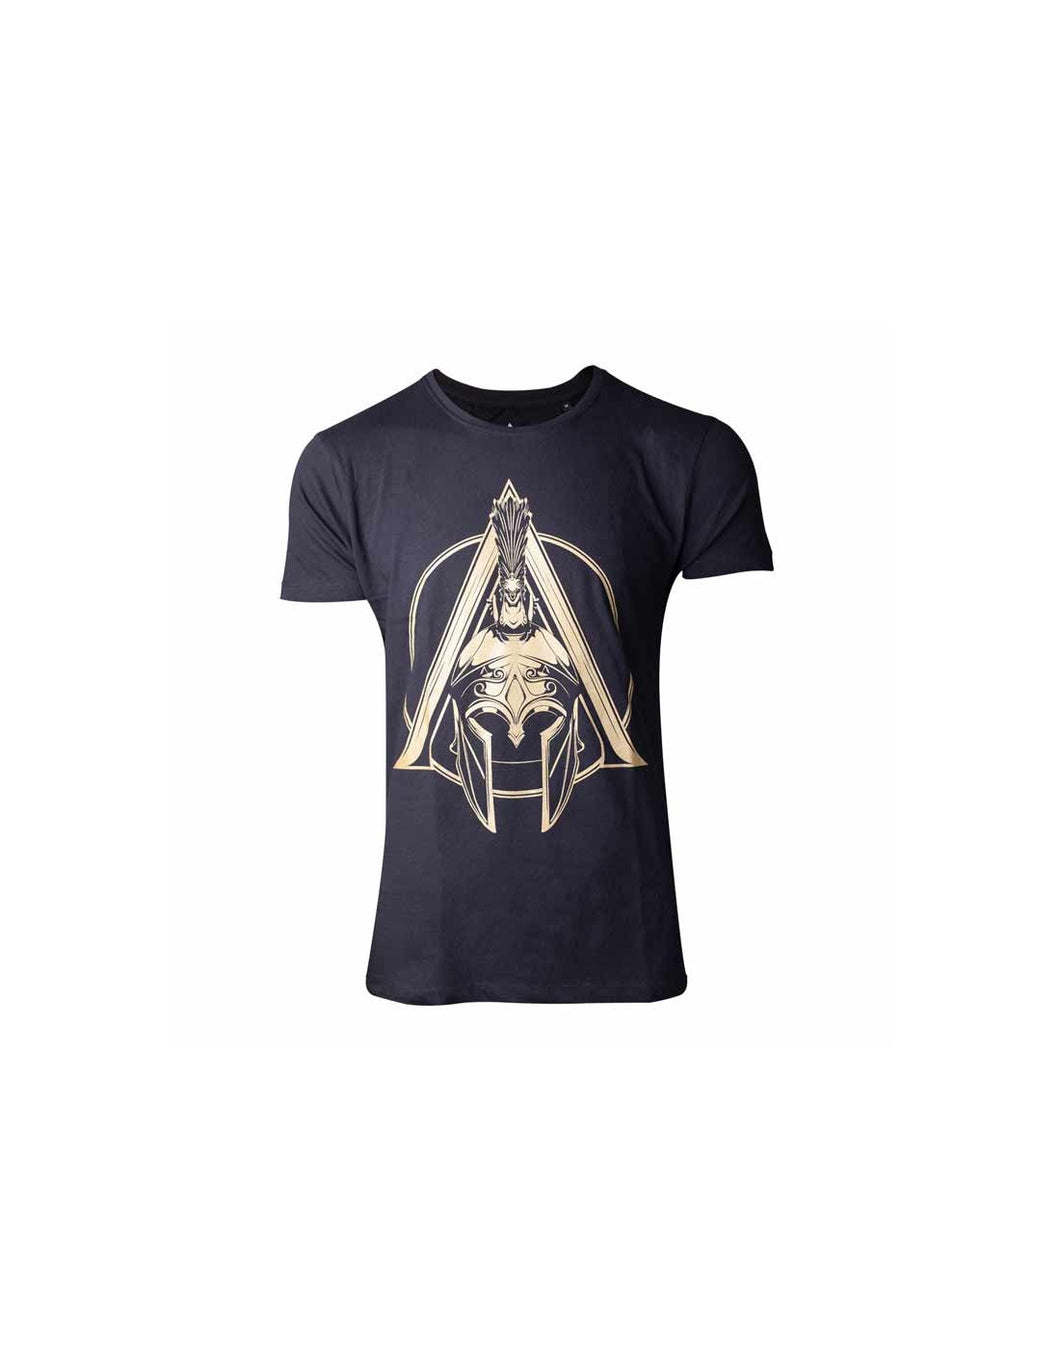 CAMISETA ASSASSIN'S CREED SPARTAN